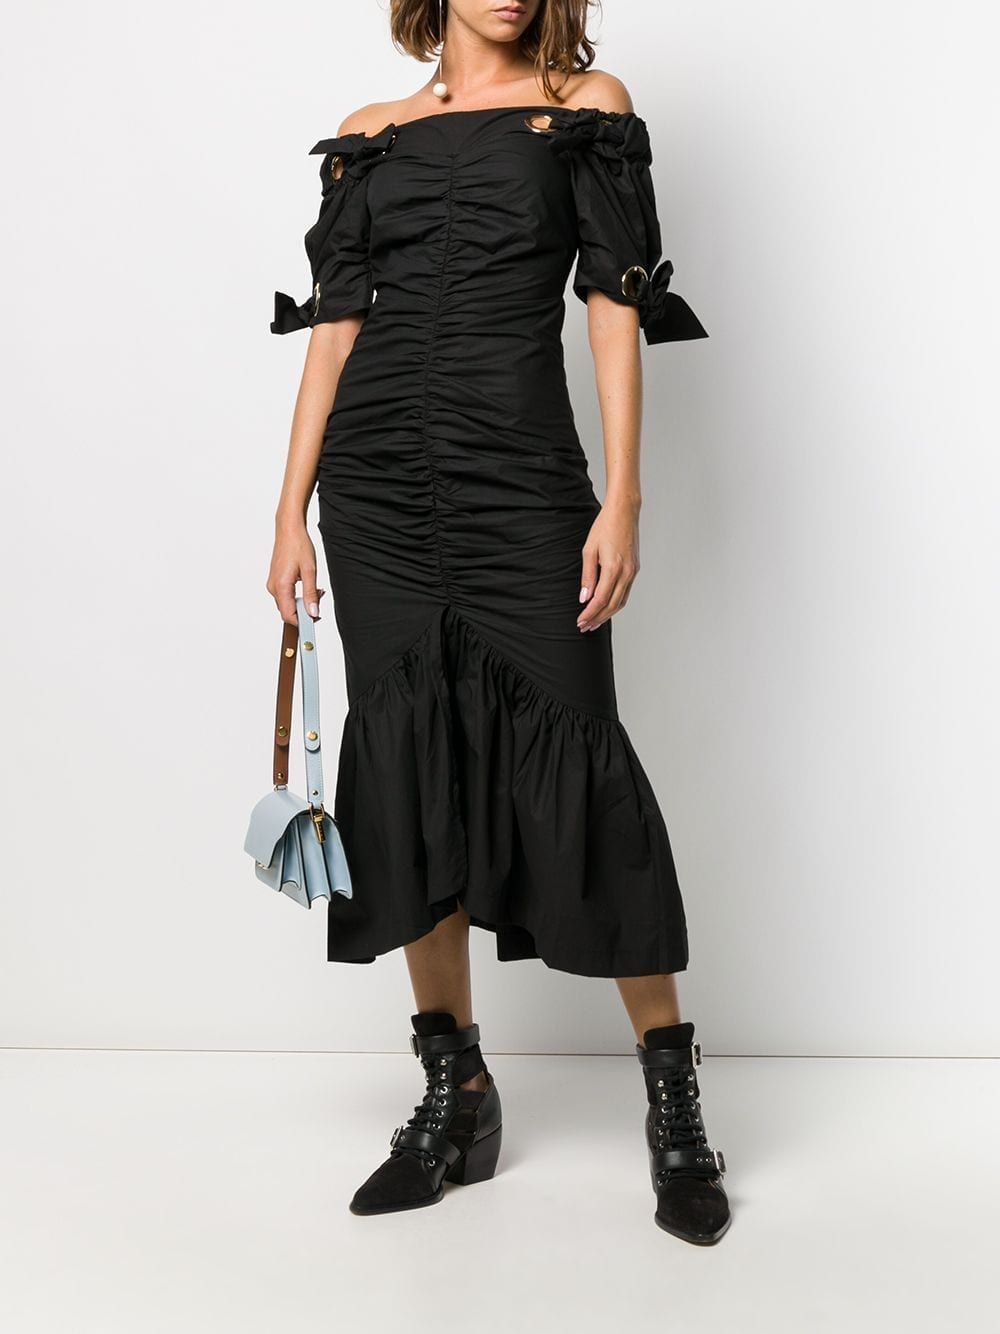 ALICE MCCALL Ruched Eyelet Midi Dress